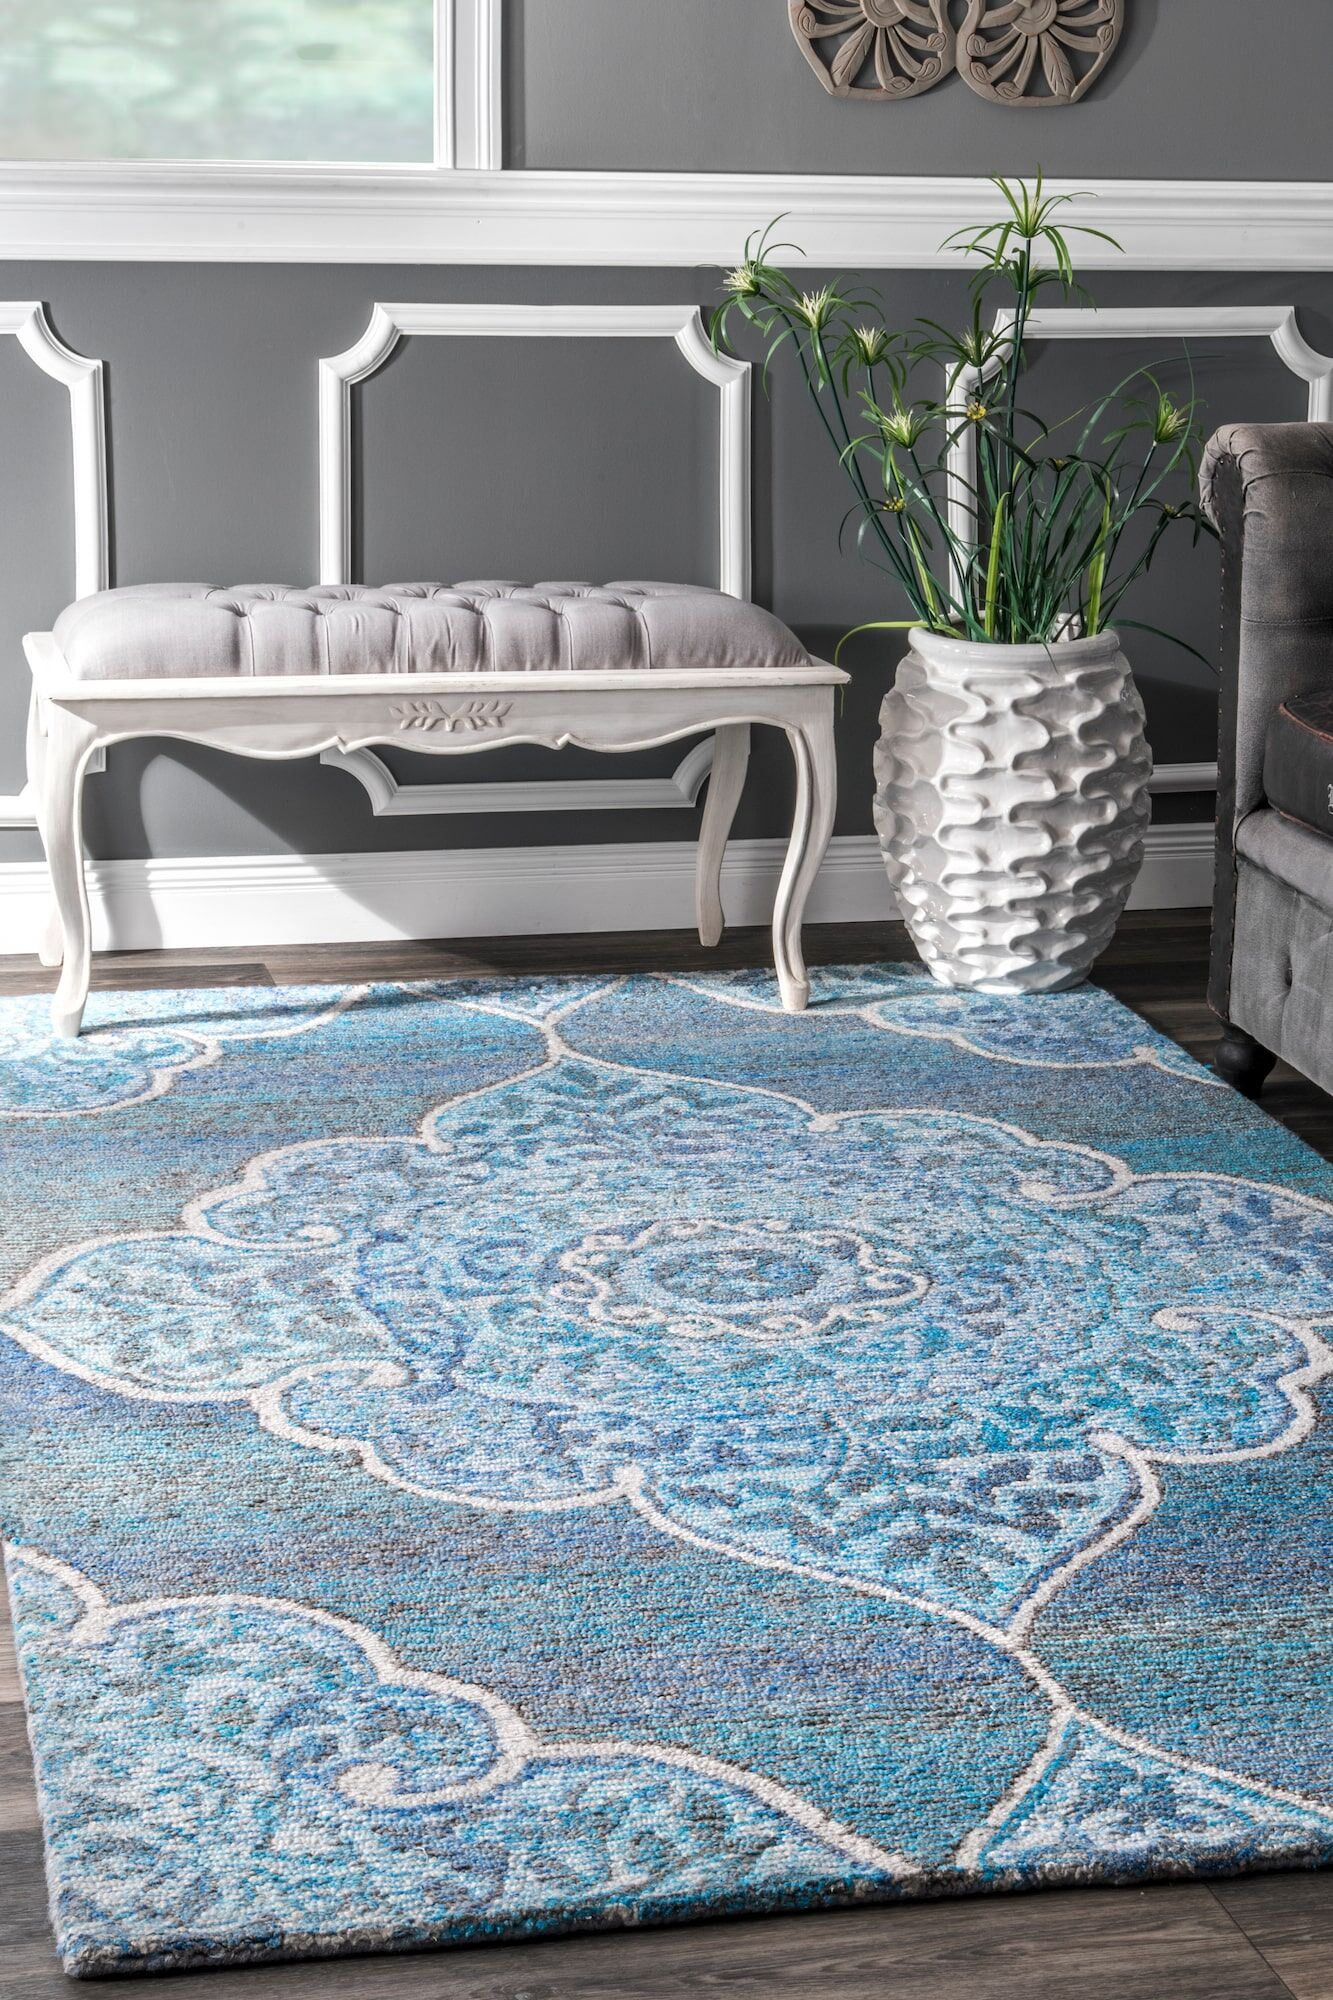 Norristown Hand Tufted Blue Area Rug Rug Size: Rectangle 7'6